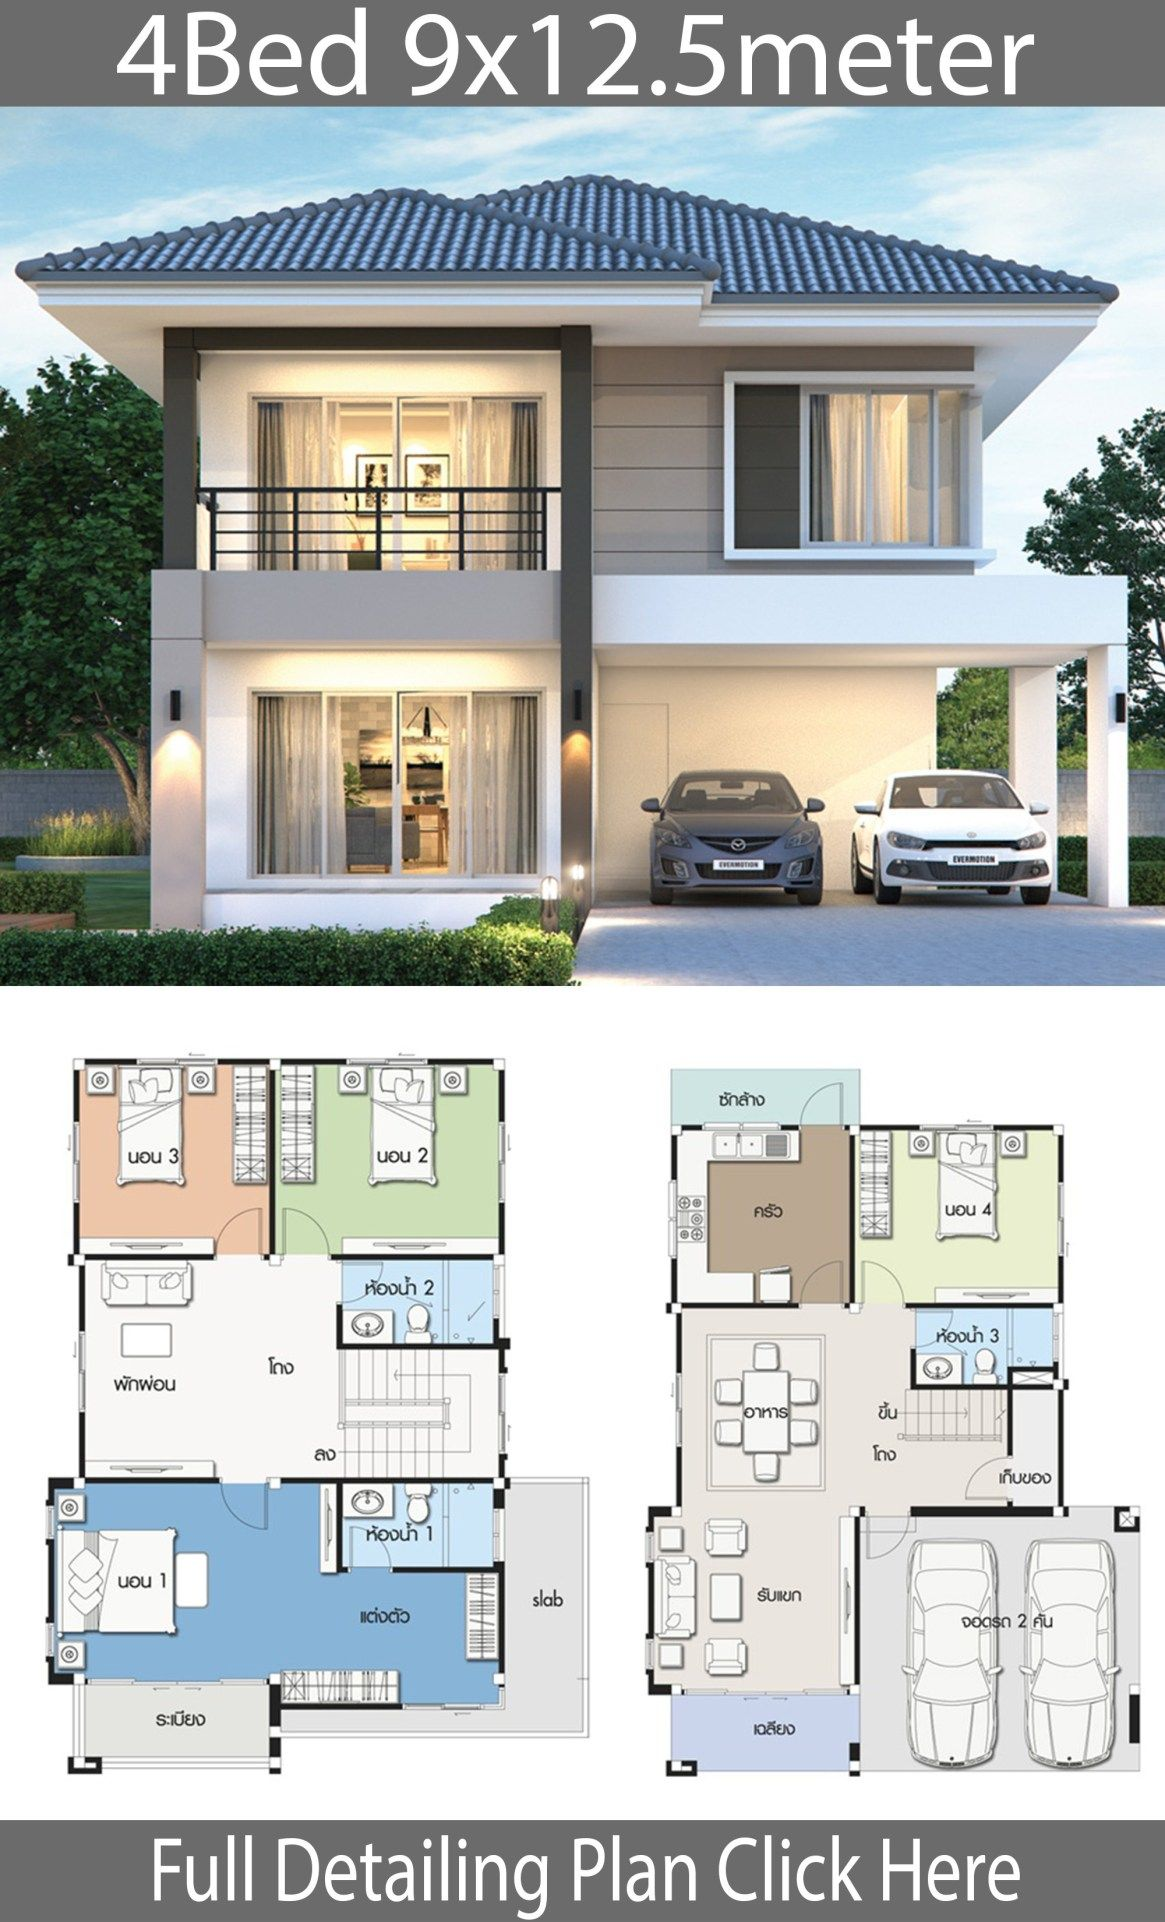 plan 9x12 5m with 4 bedrooms